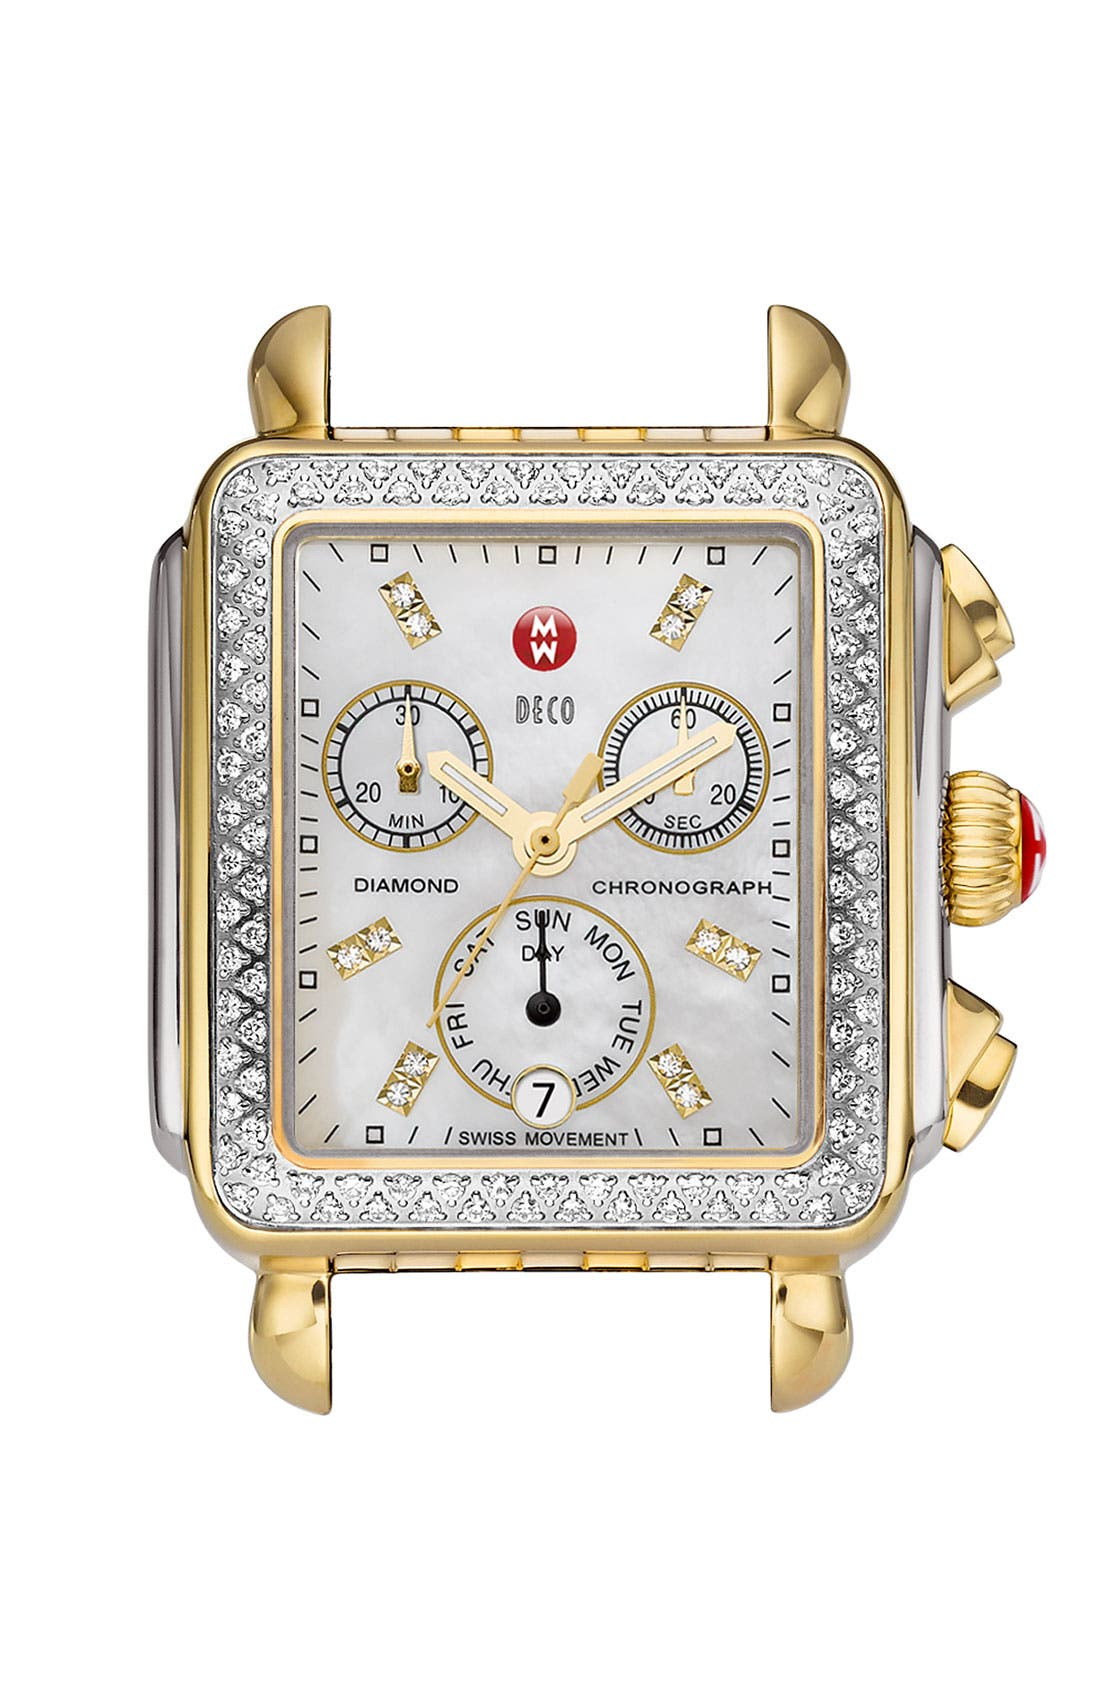 Alternate Image 1 Selected - MICHELE 'Deco Diamond' Two-Tone Watch Case & 18mm Patent Leather Strap